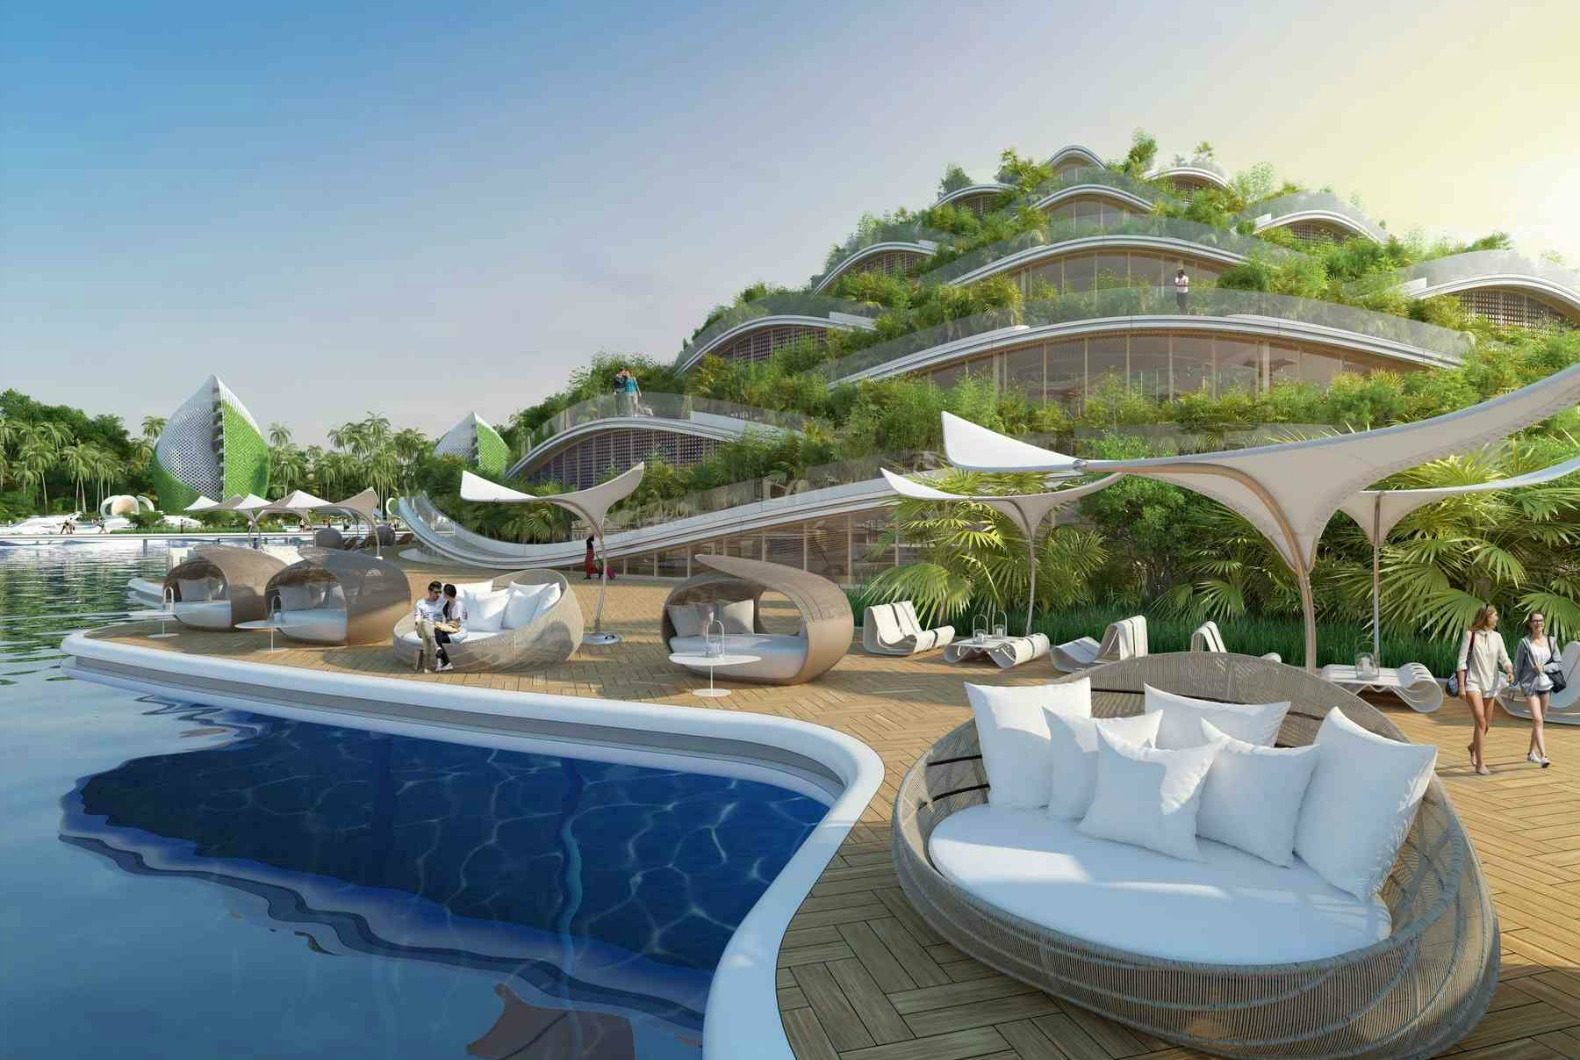 vincent callebaut 39 s visionary eco resort for the philippines features rotating energy generating. Black Bedroom Furniture Sets. Home Design Ideas